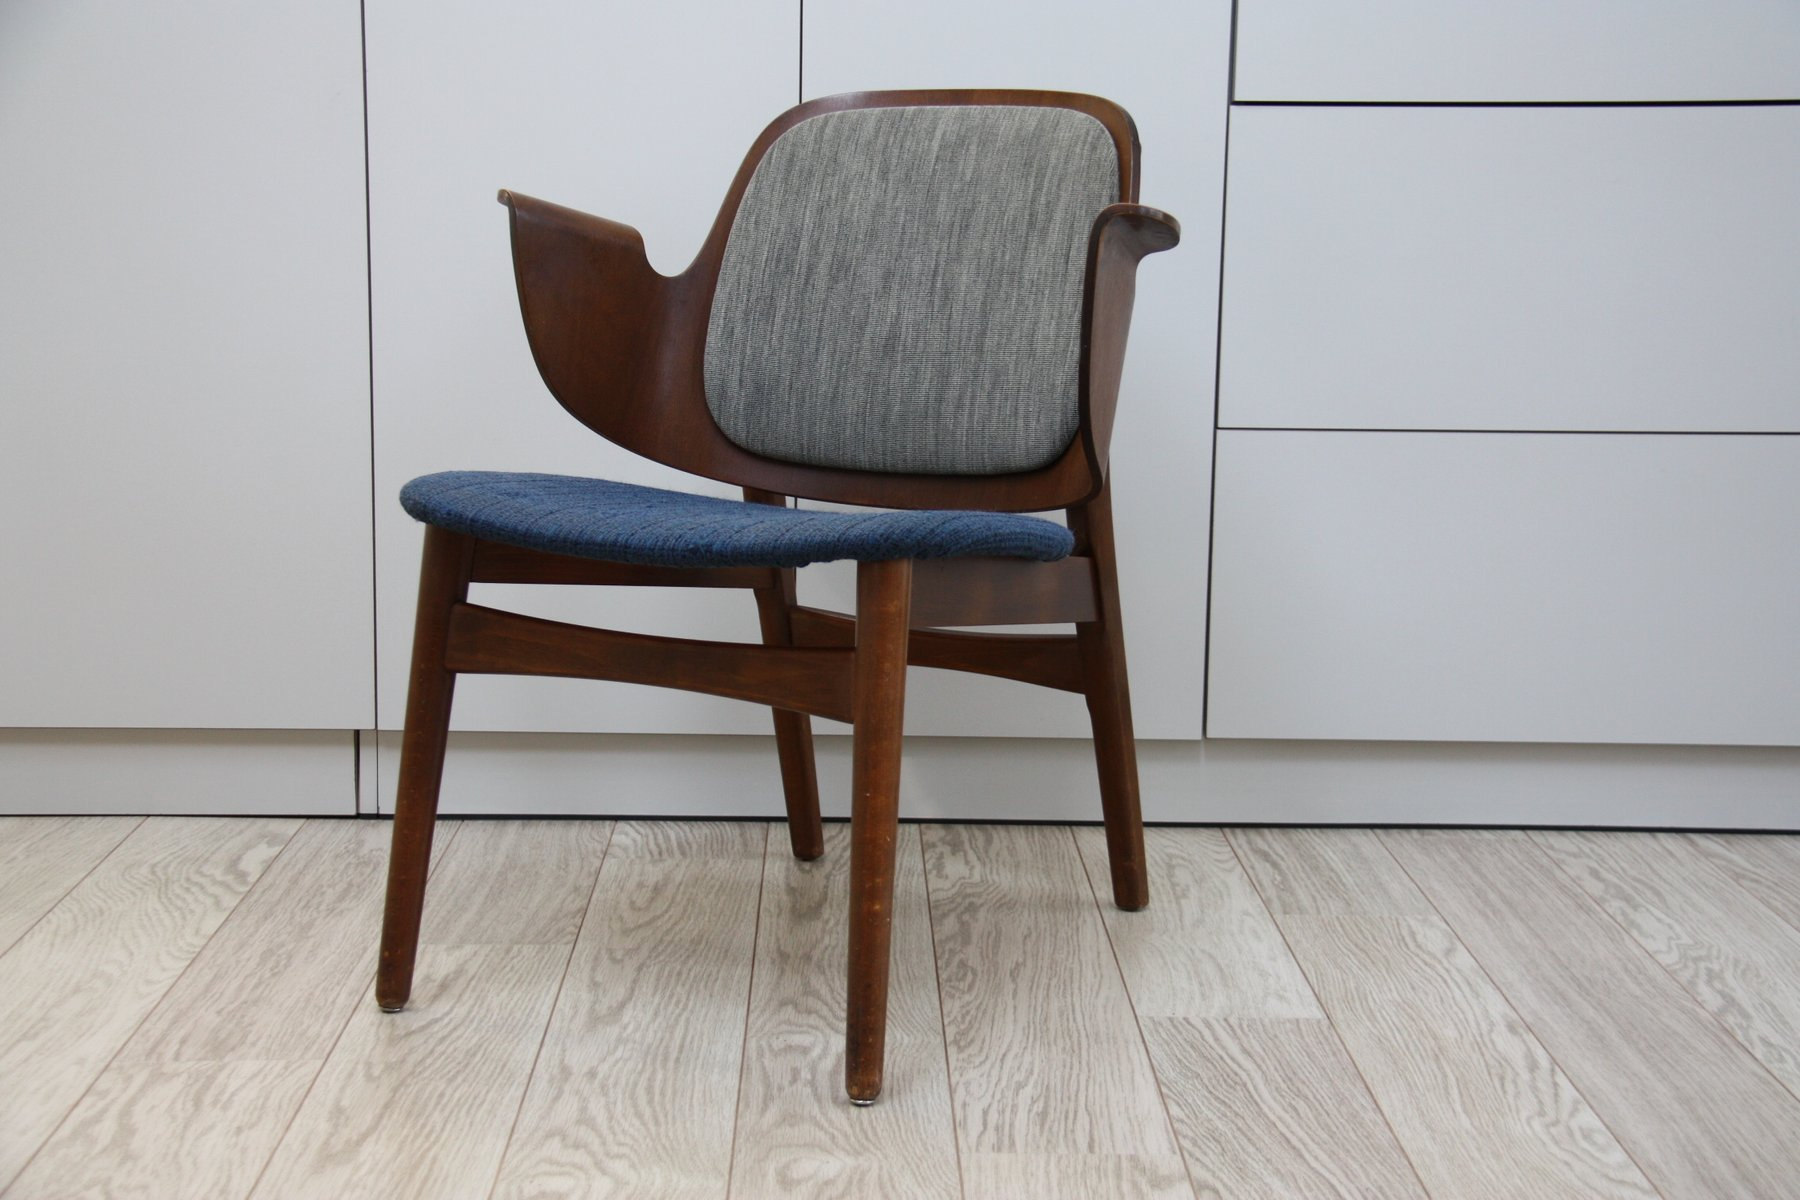 Nice Model 107 Armchair By Hans Olsen For Brahmin Mobler, 1957